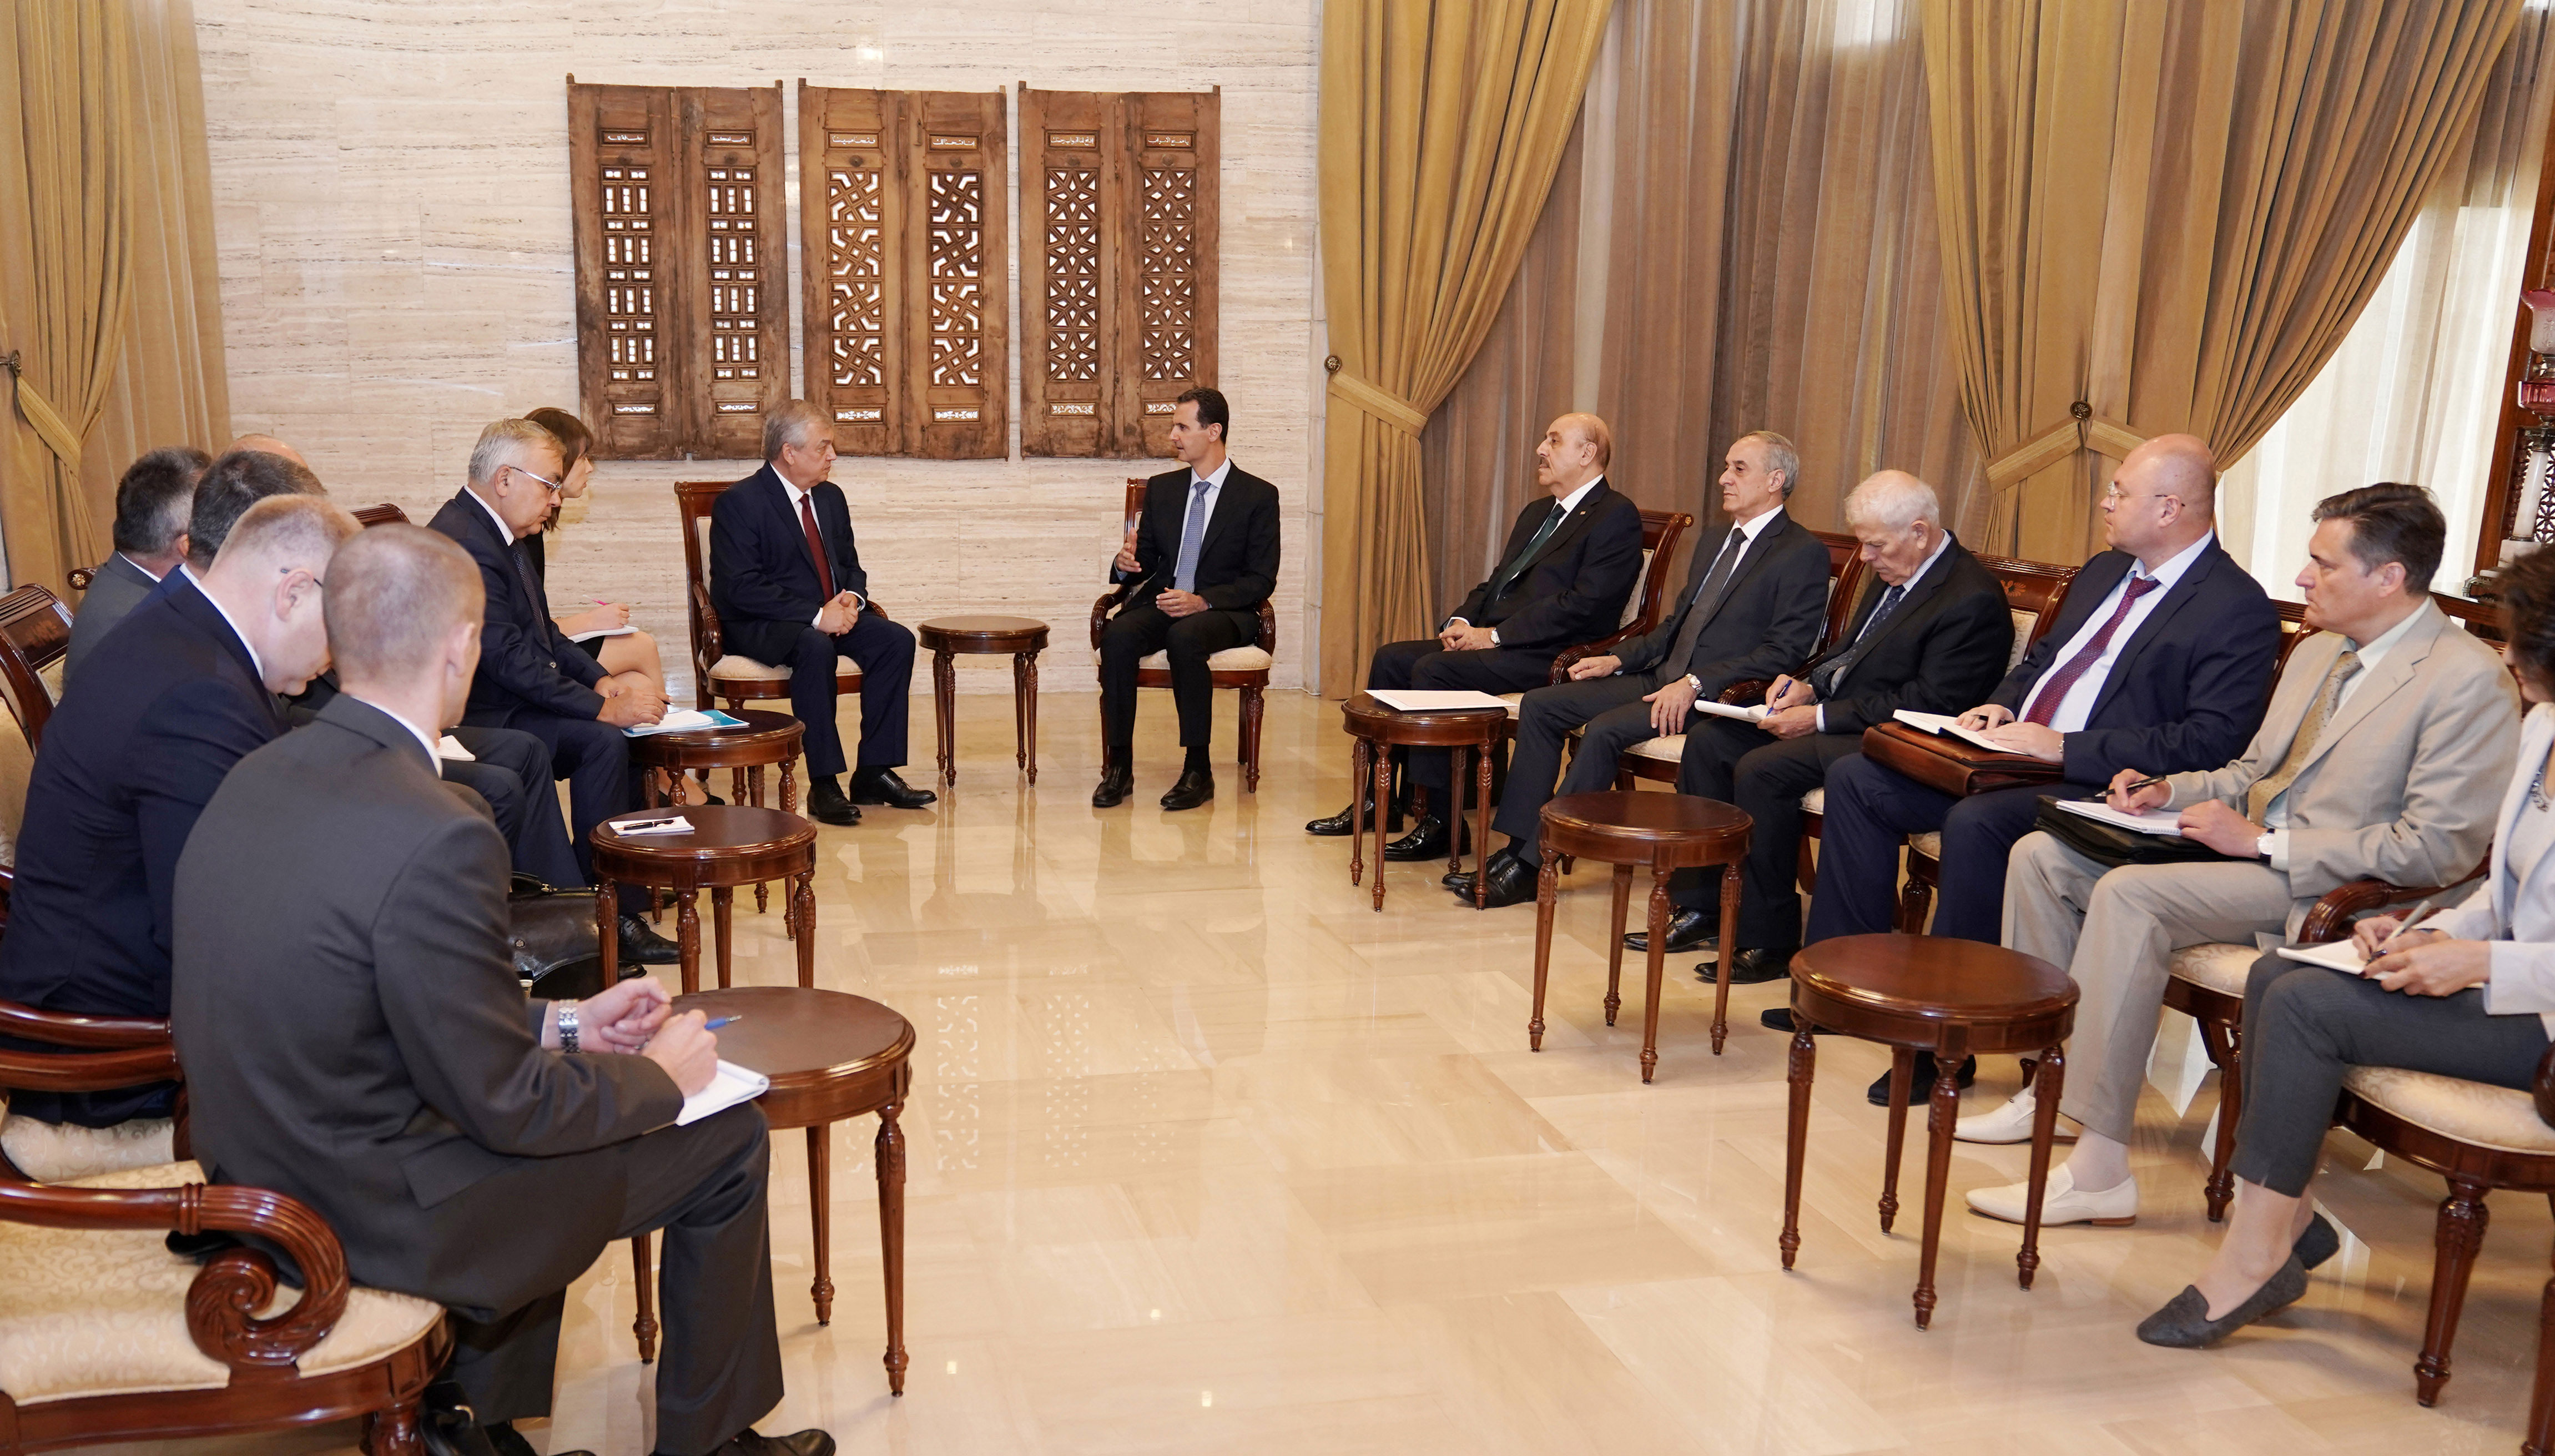 Assad Meets With Russian President's Special Envoy To Discuss Situation In Syria